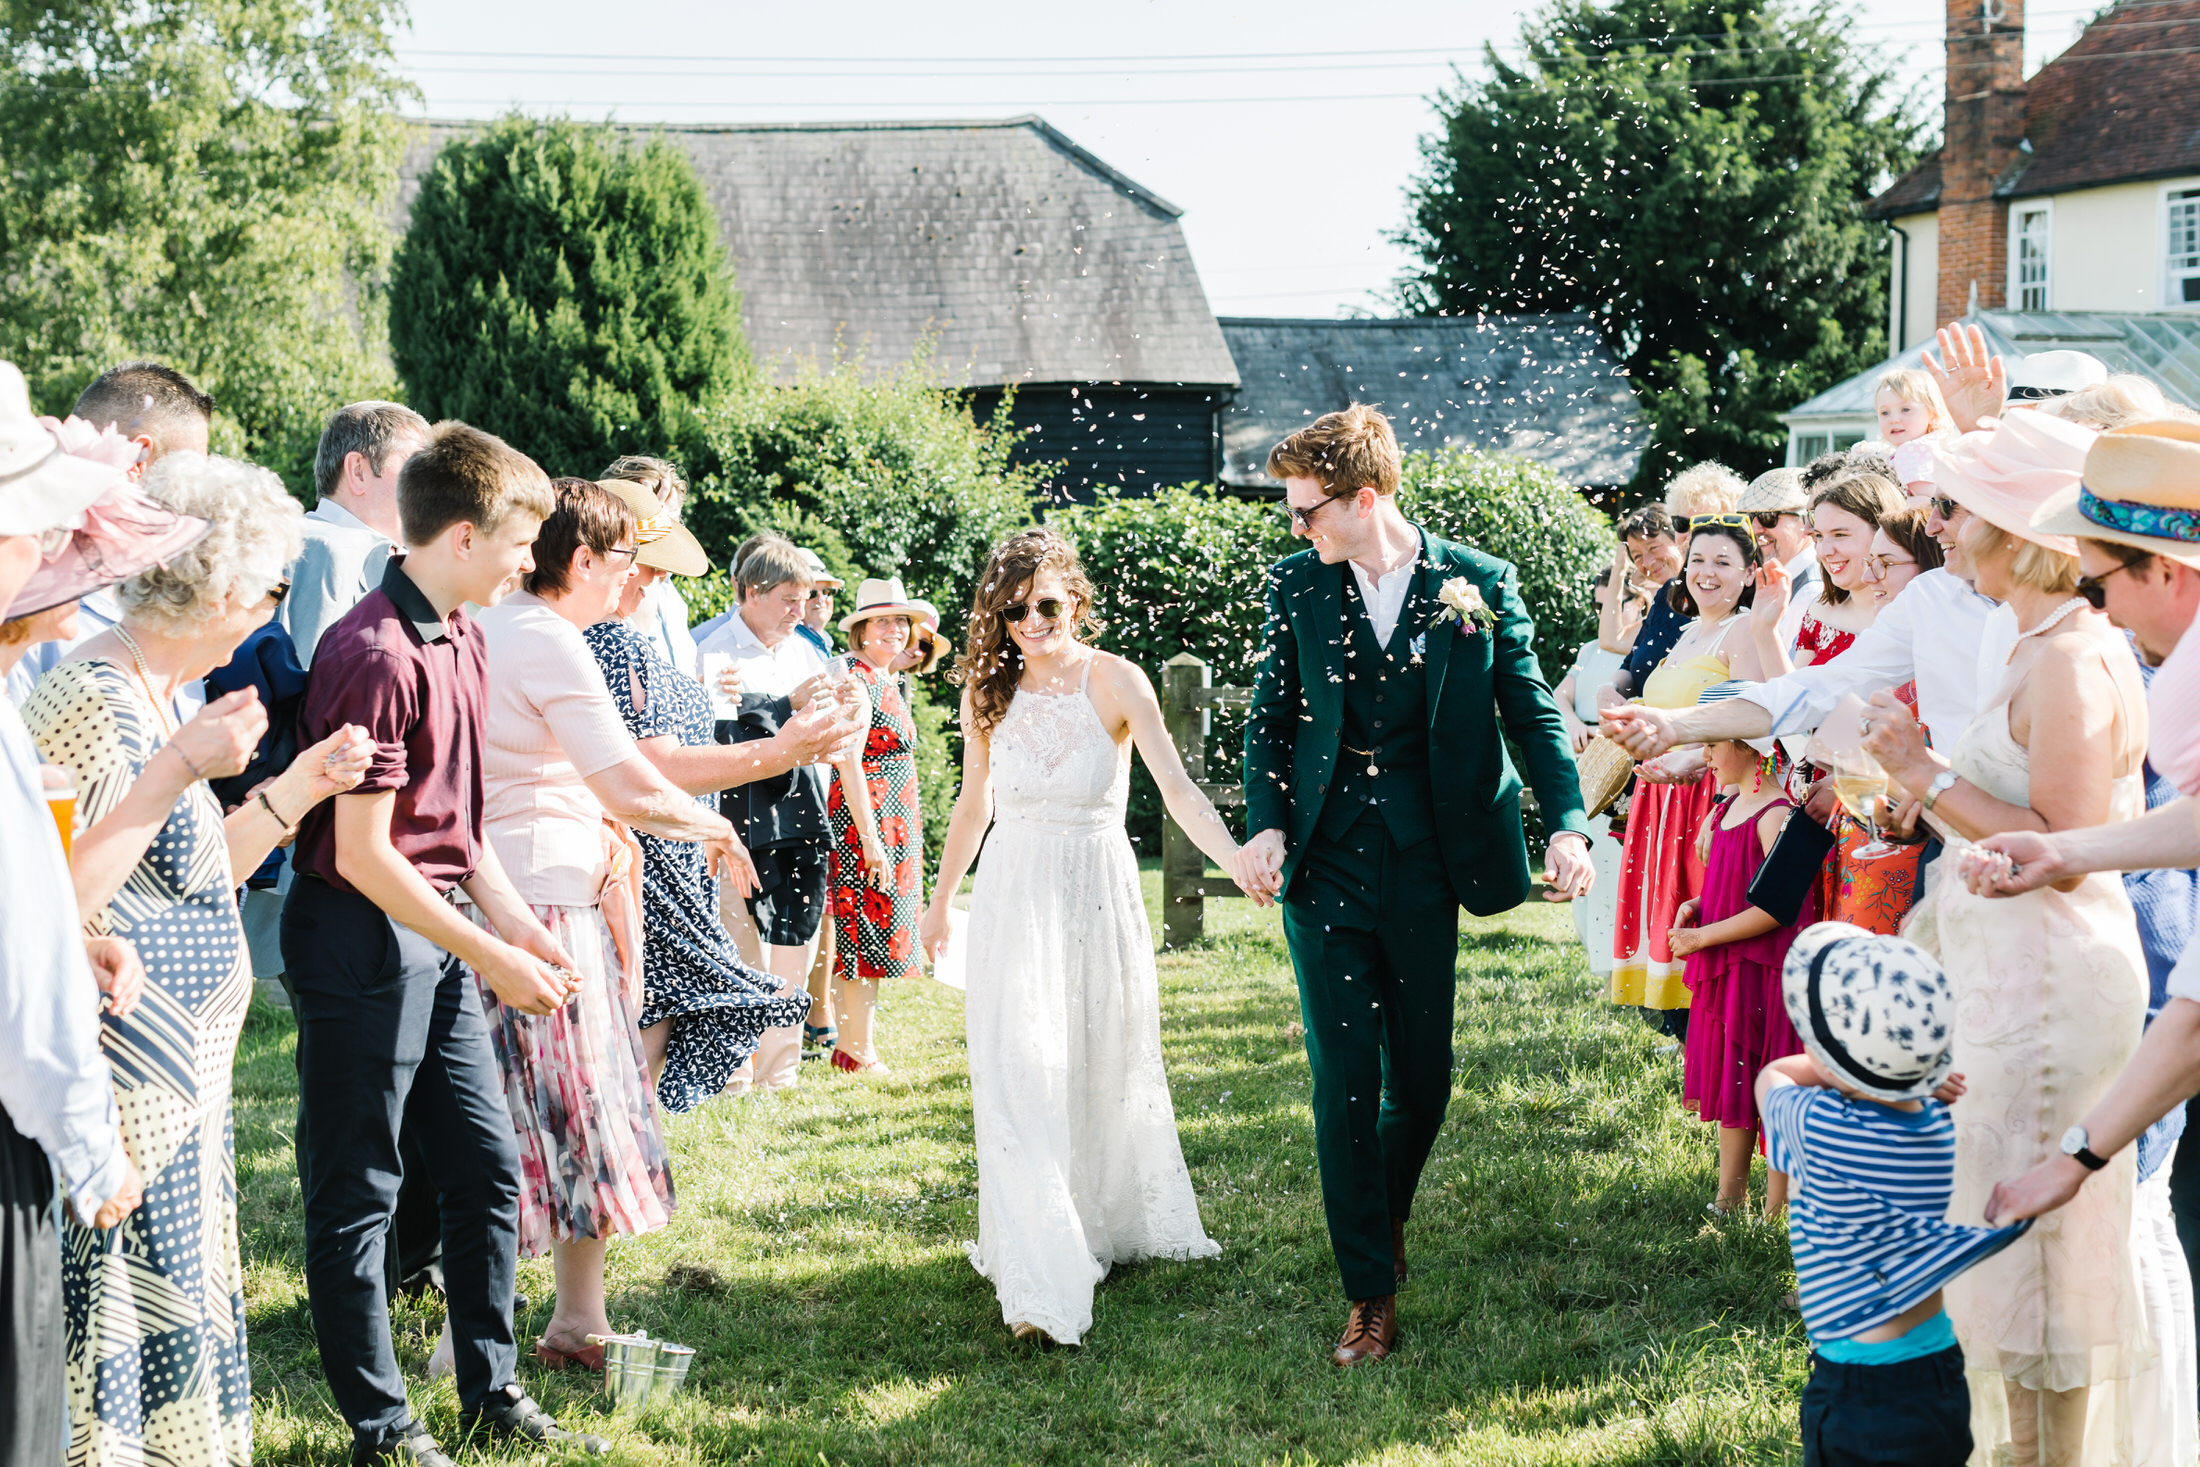 how to plan a back garden wedding bride and groom couple walk through confetti in their garden wearing sunglasses